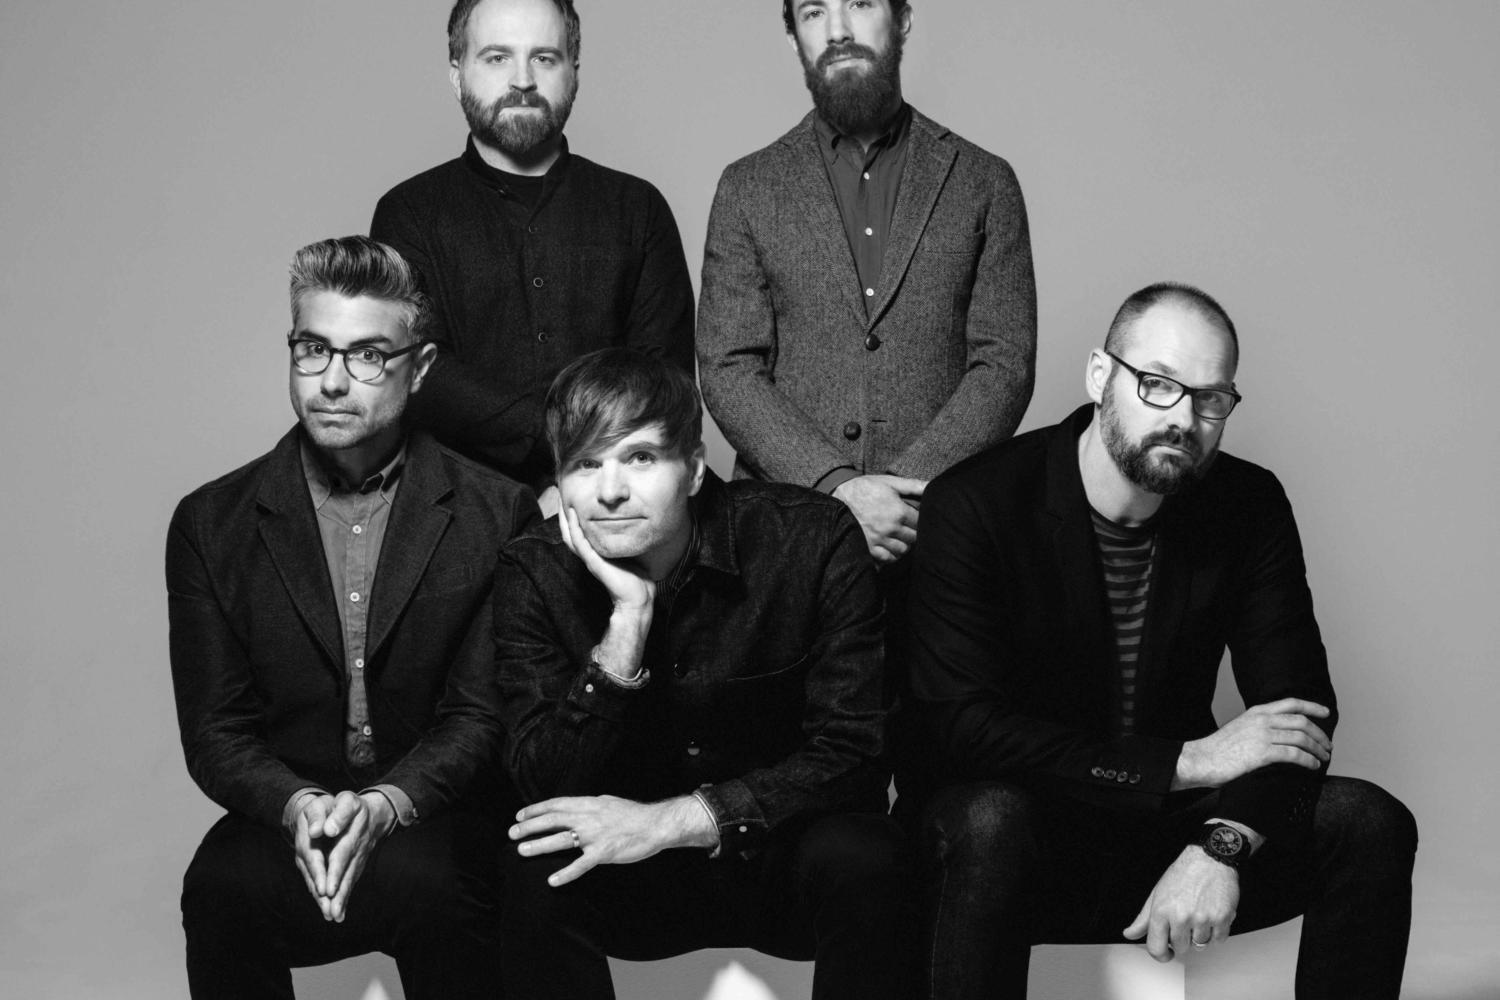 Death Cab For Cutie share new track 'I Dreamt We Spoke Again'